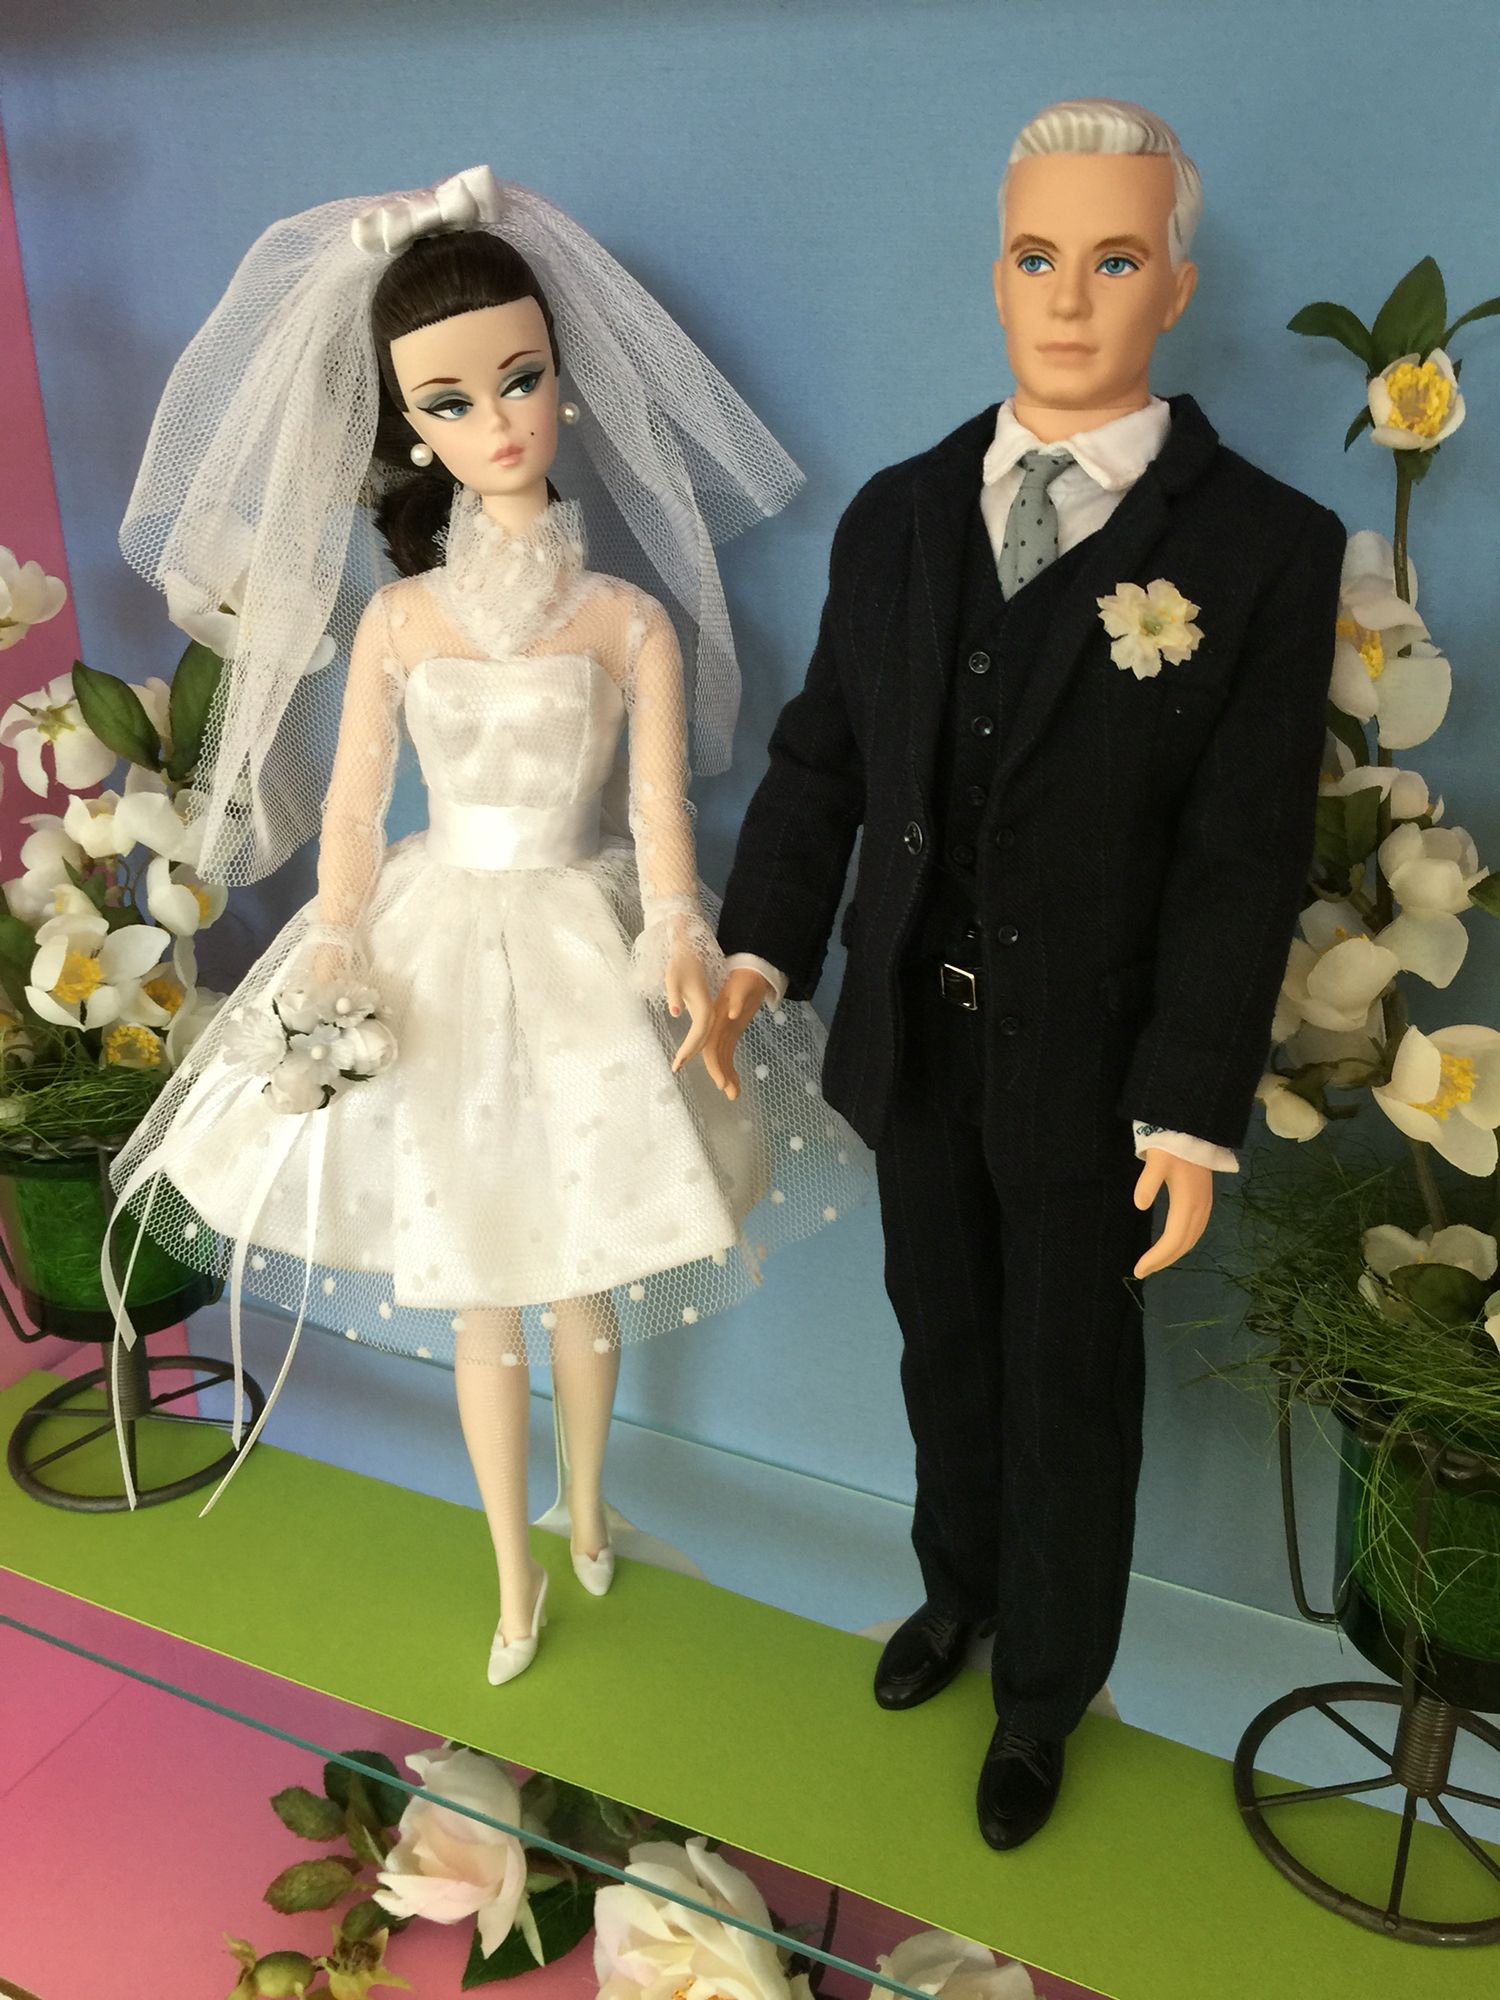 Blush Beauty Barbie and Roger Sterling Mad Men Wedding Day